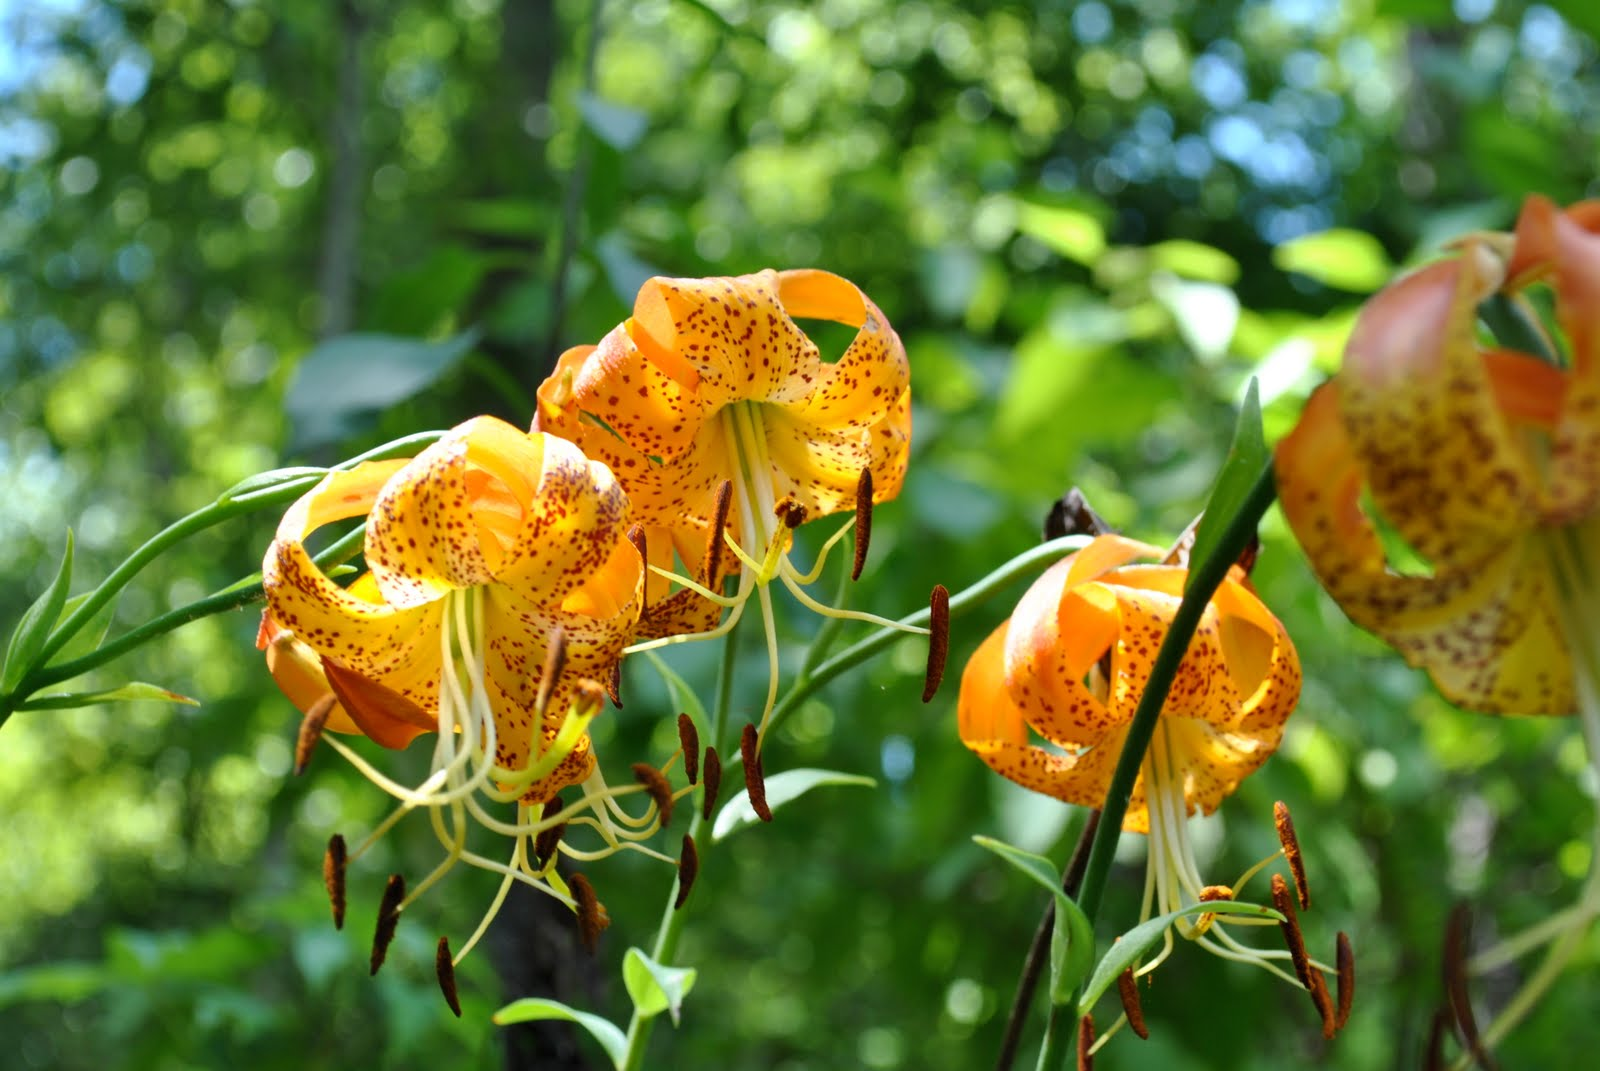 Plant of the day lilium michauxii the garden dirt blog lilium michauxii the carolina lily is named for the french botanist andre michaux who studied plants in the southeastern us its beauty among dry woods izmirmasajfo